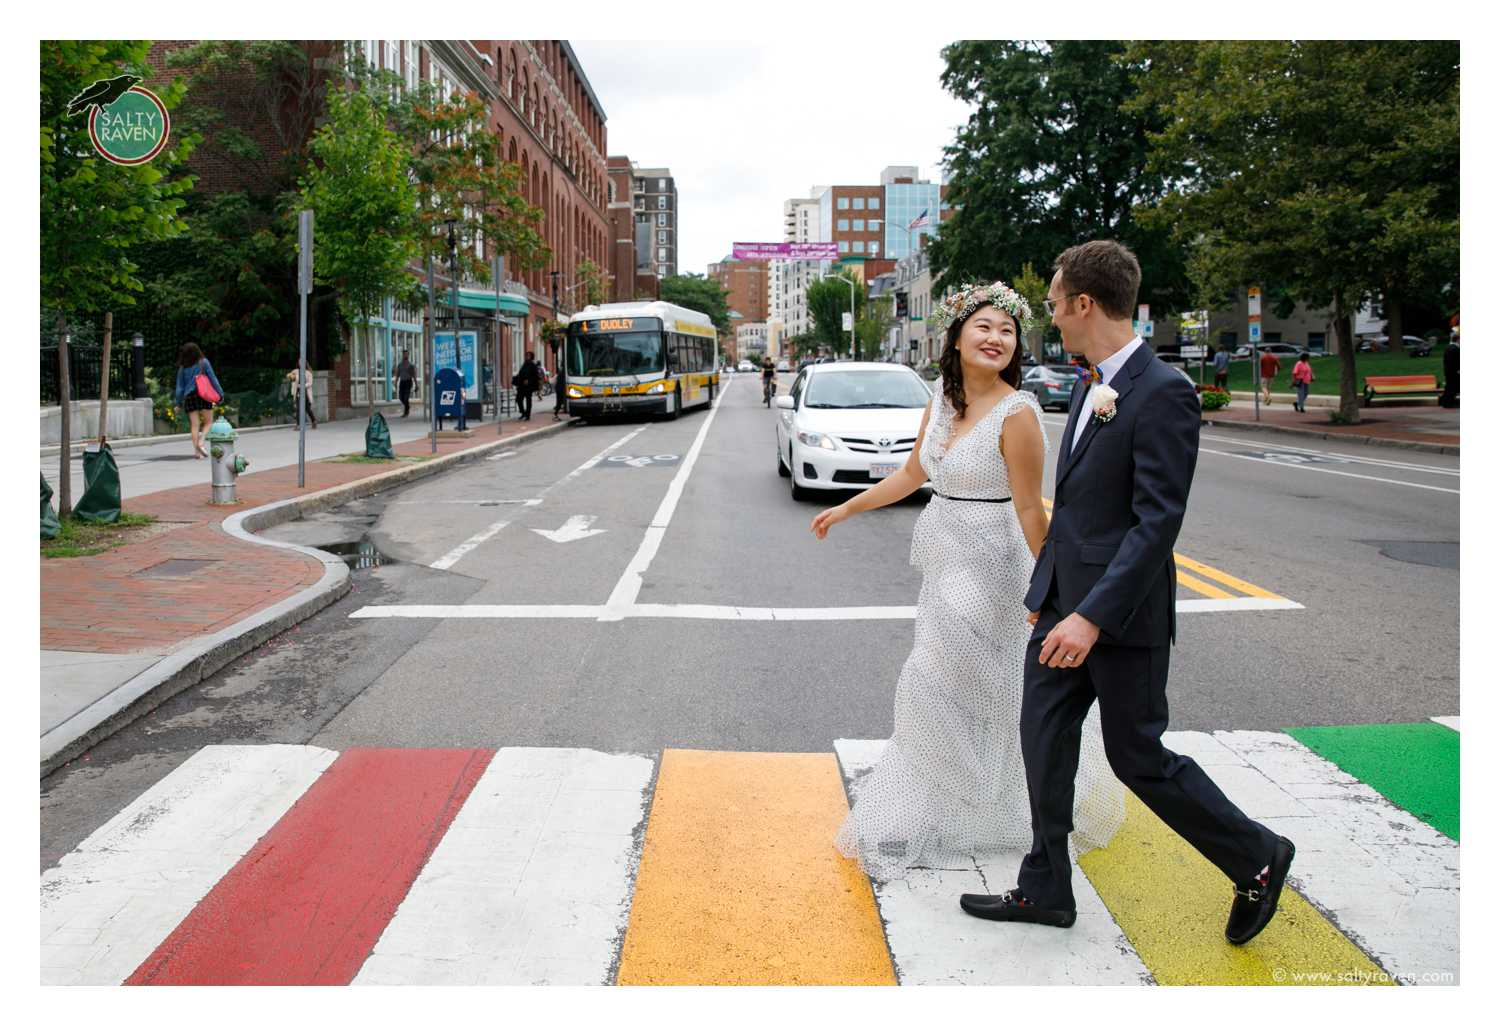 A couple getting married at Cambridge City Hall crosses a rainbow crosswalk.